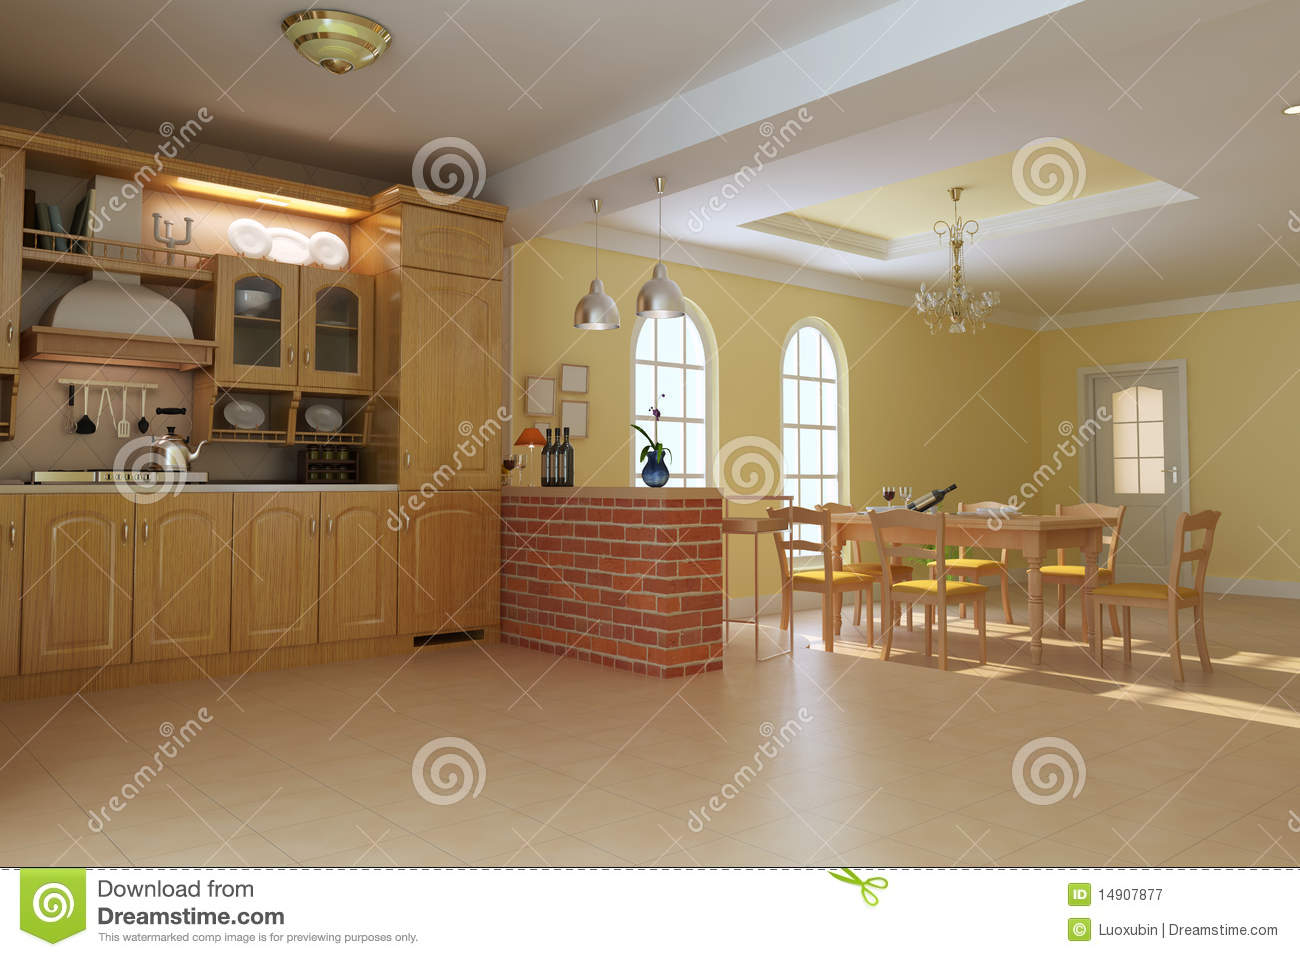 Classic luxury kitchen and dining room stock illustration image 14907877 - Luxury kitchen room ...